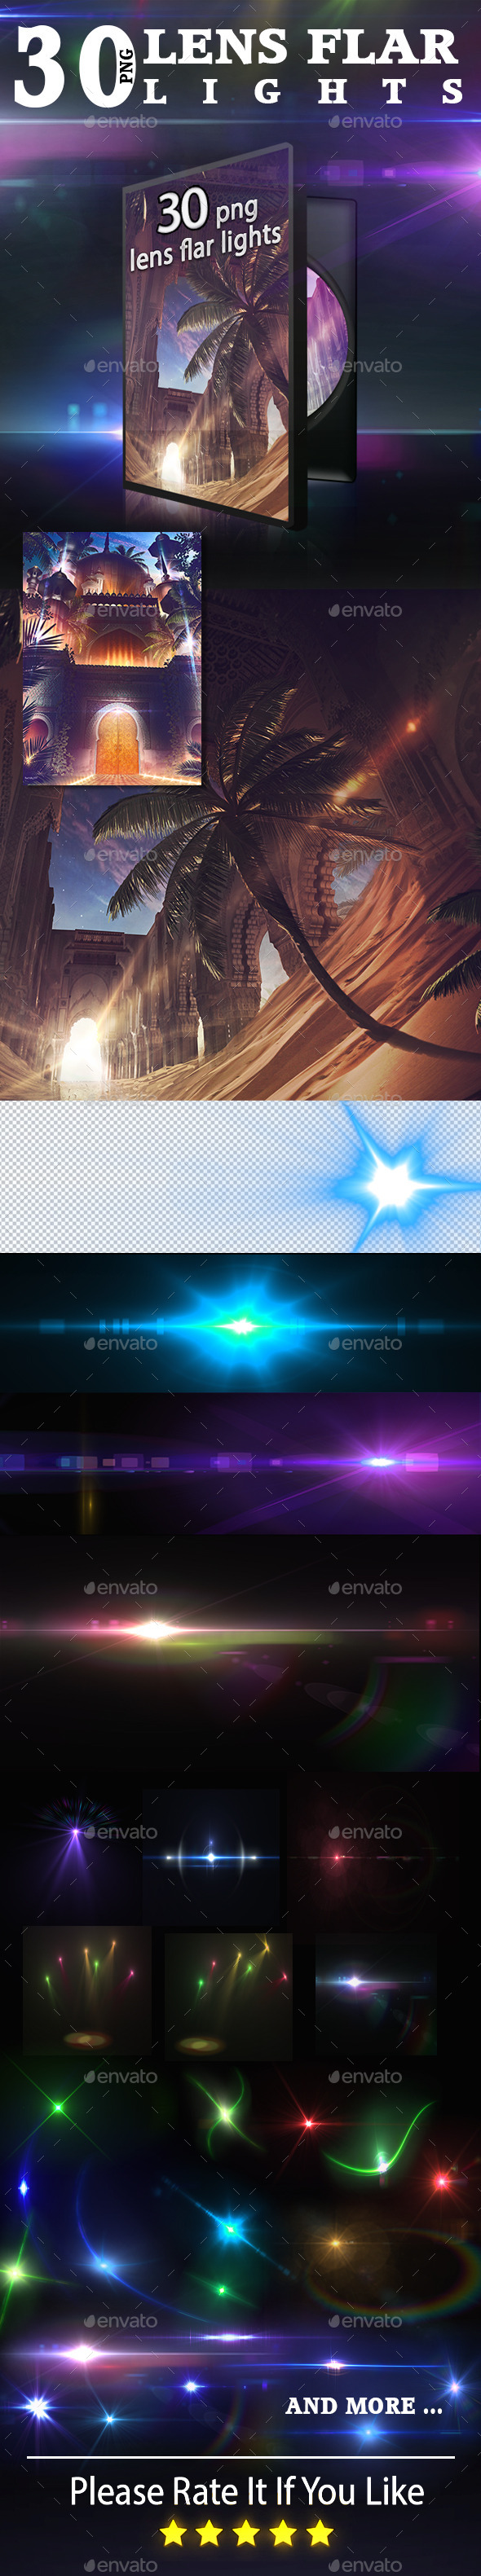 30 Awsome Lens Flare - Decorative Graphics